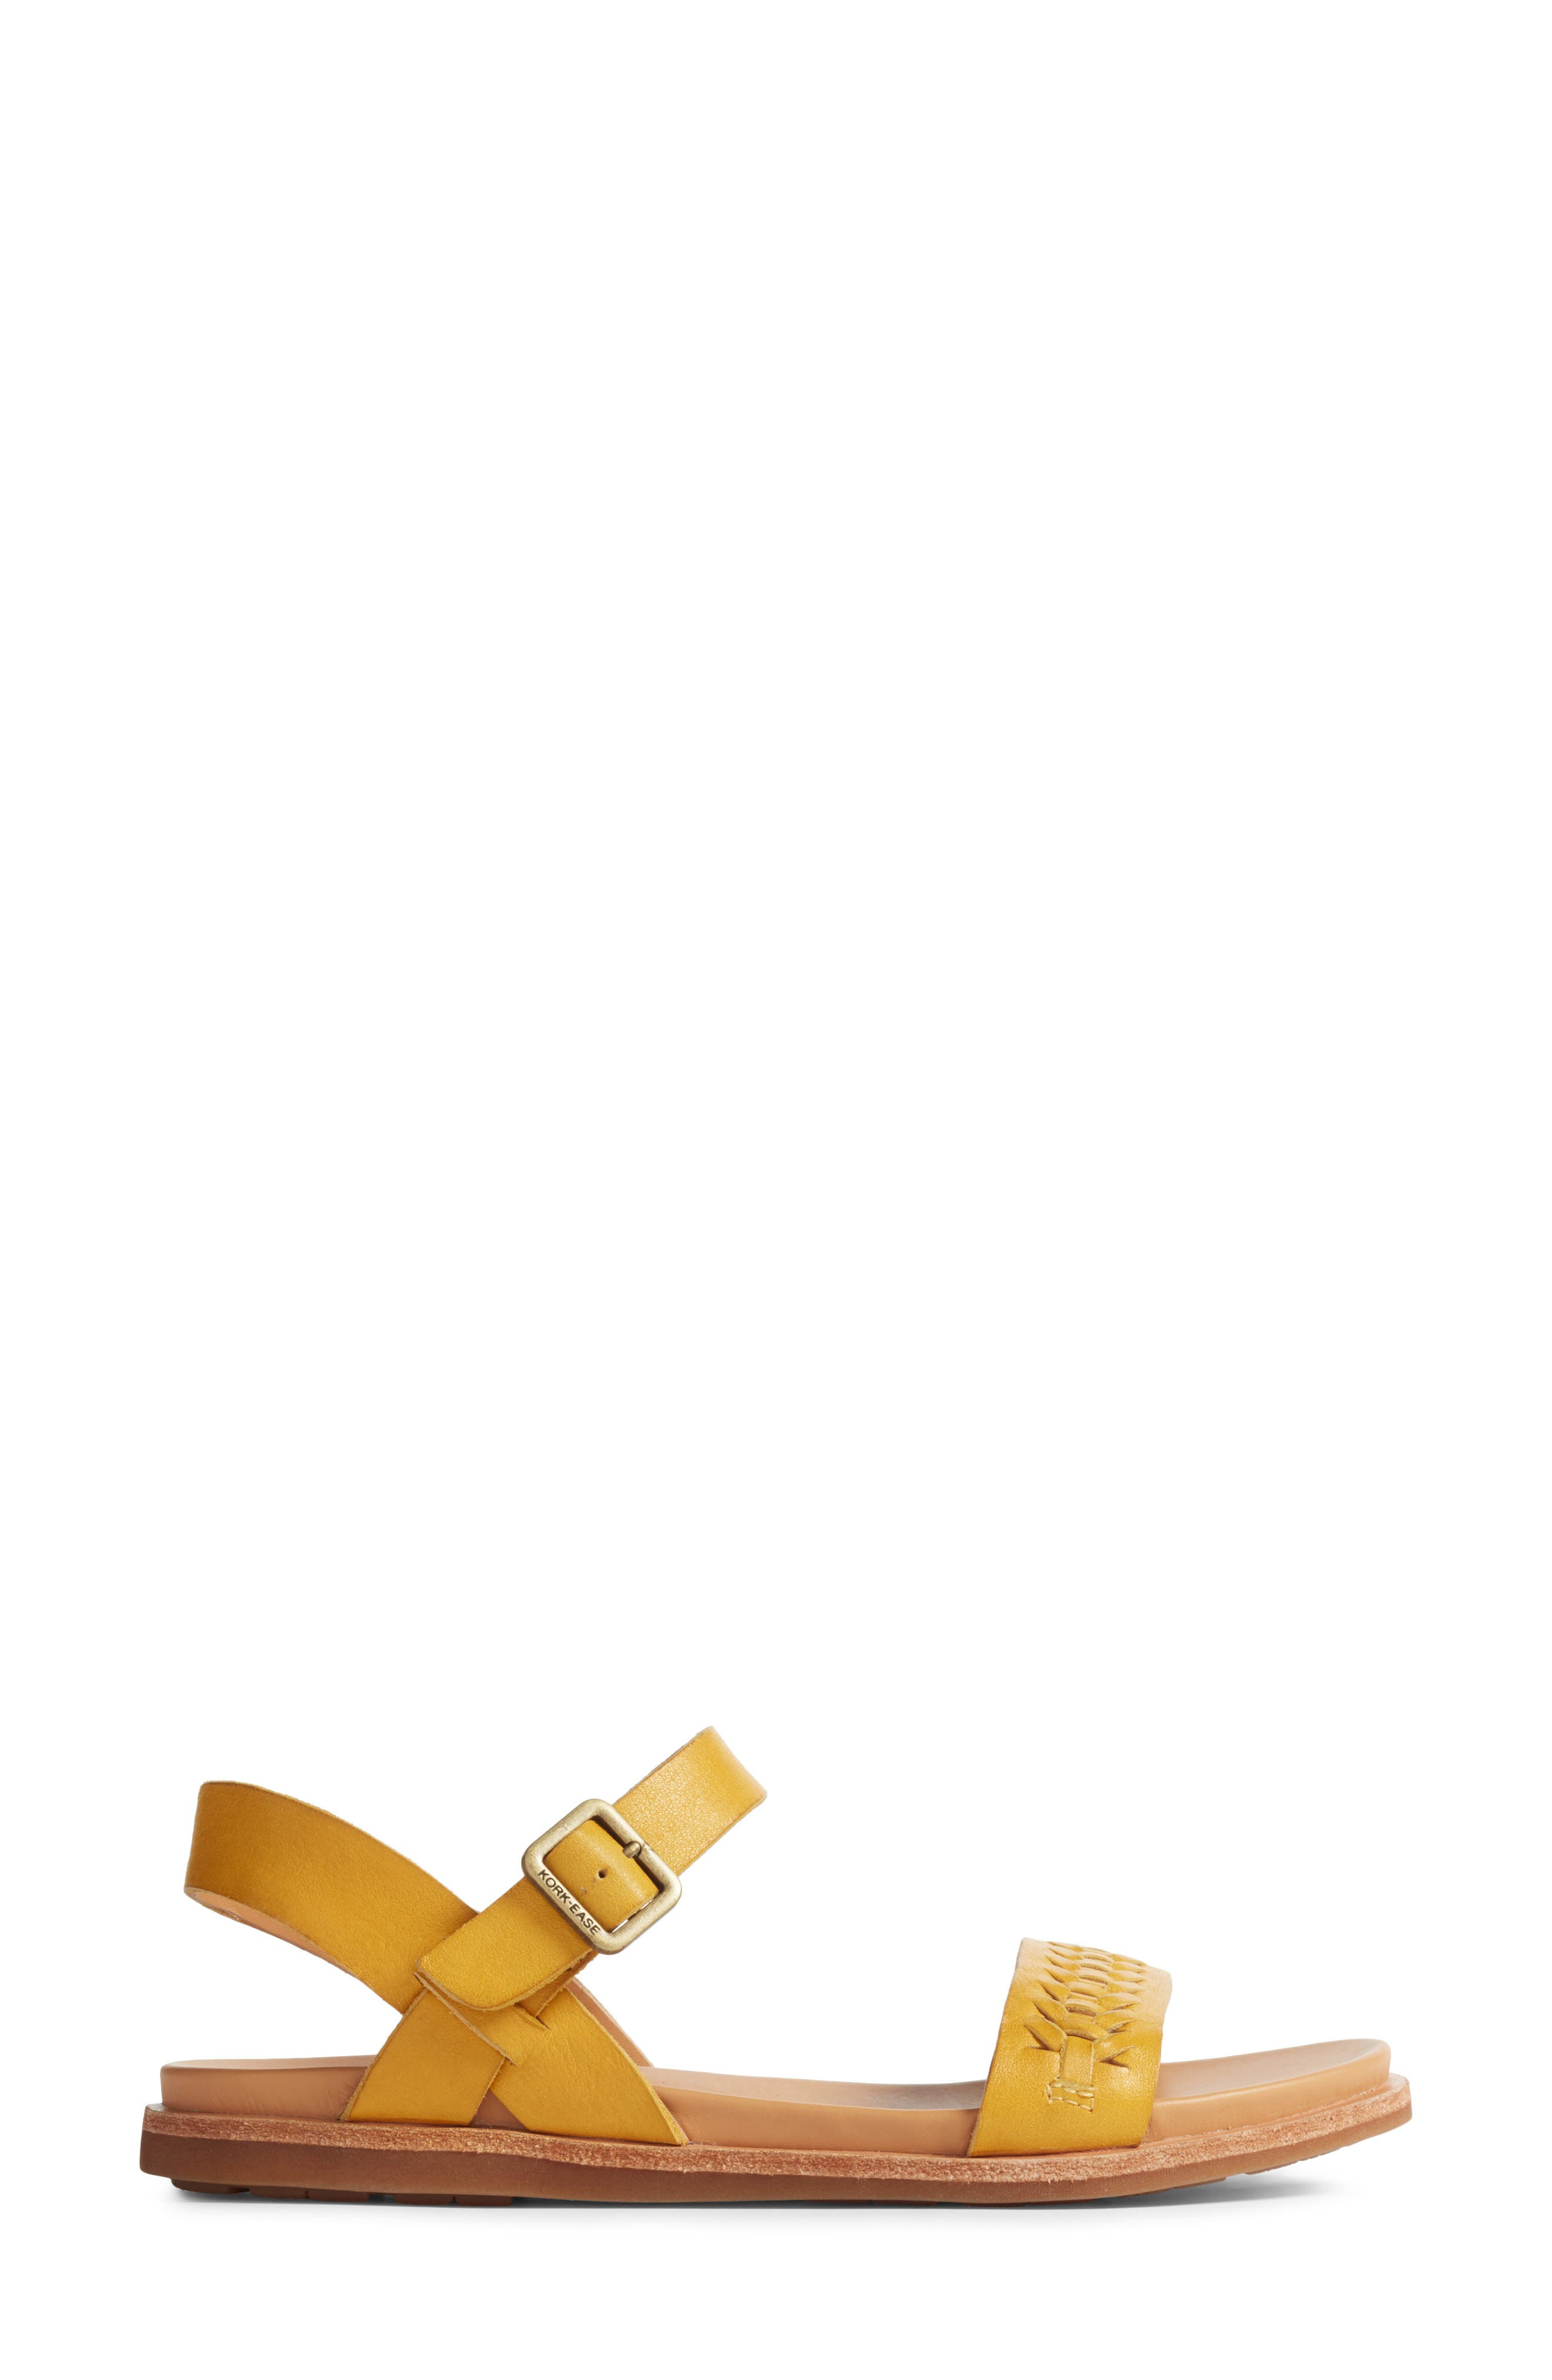 Yucca Braid Sandal,                             Alternate thumbnail 3, color,                             Yellow Leather